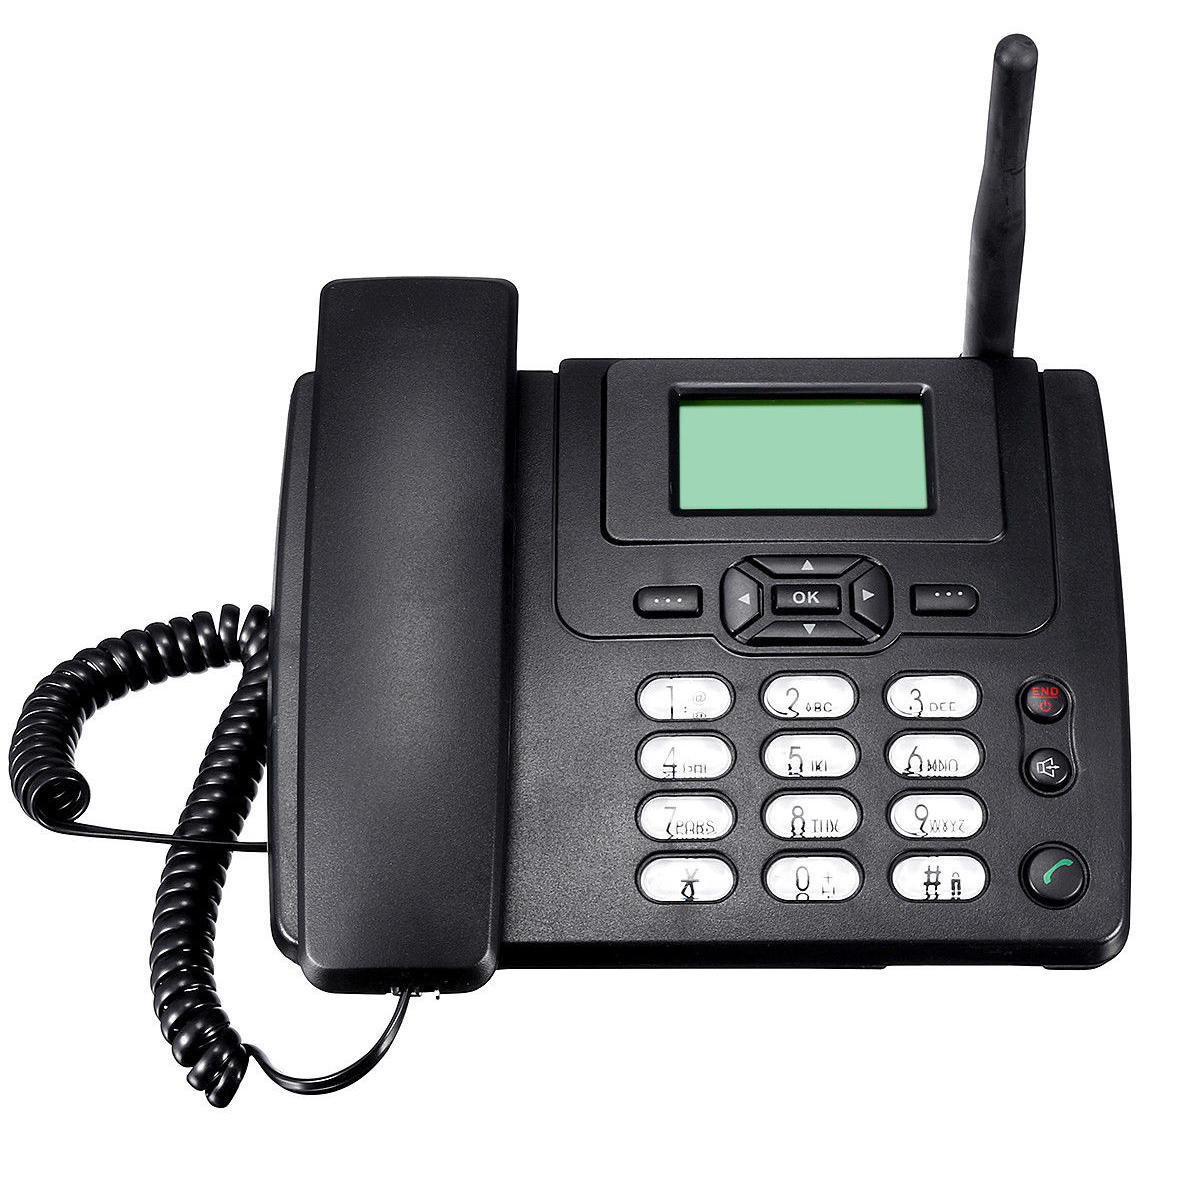 Ets3125i Office Home Business Phone Wireless Fixed